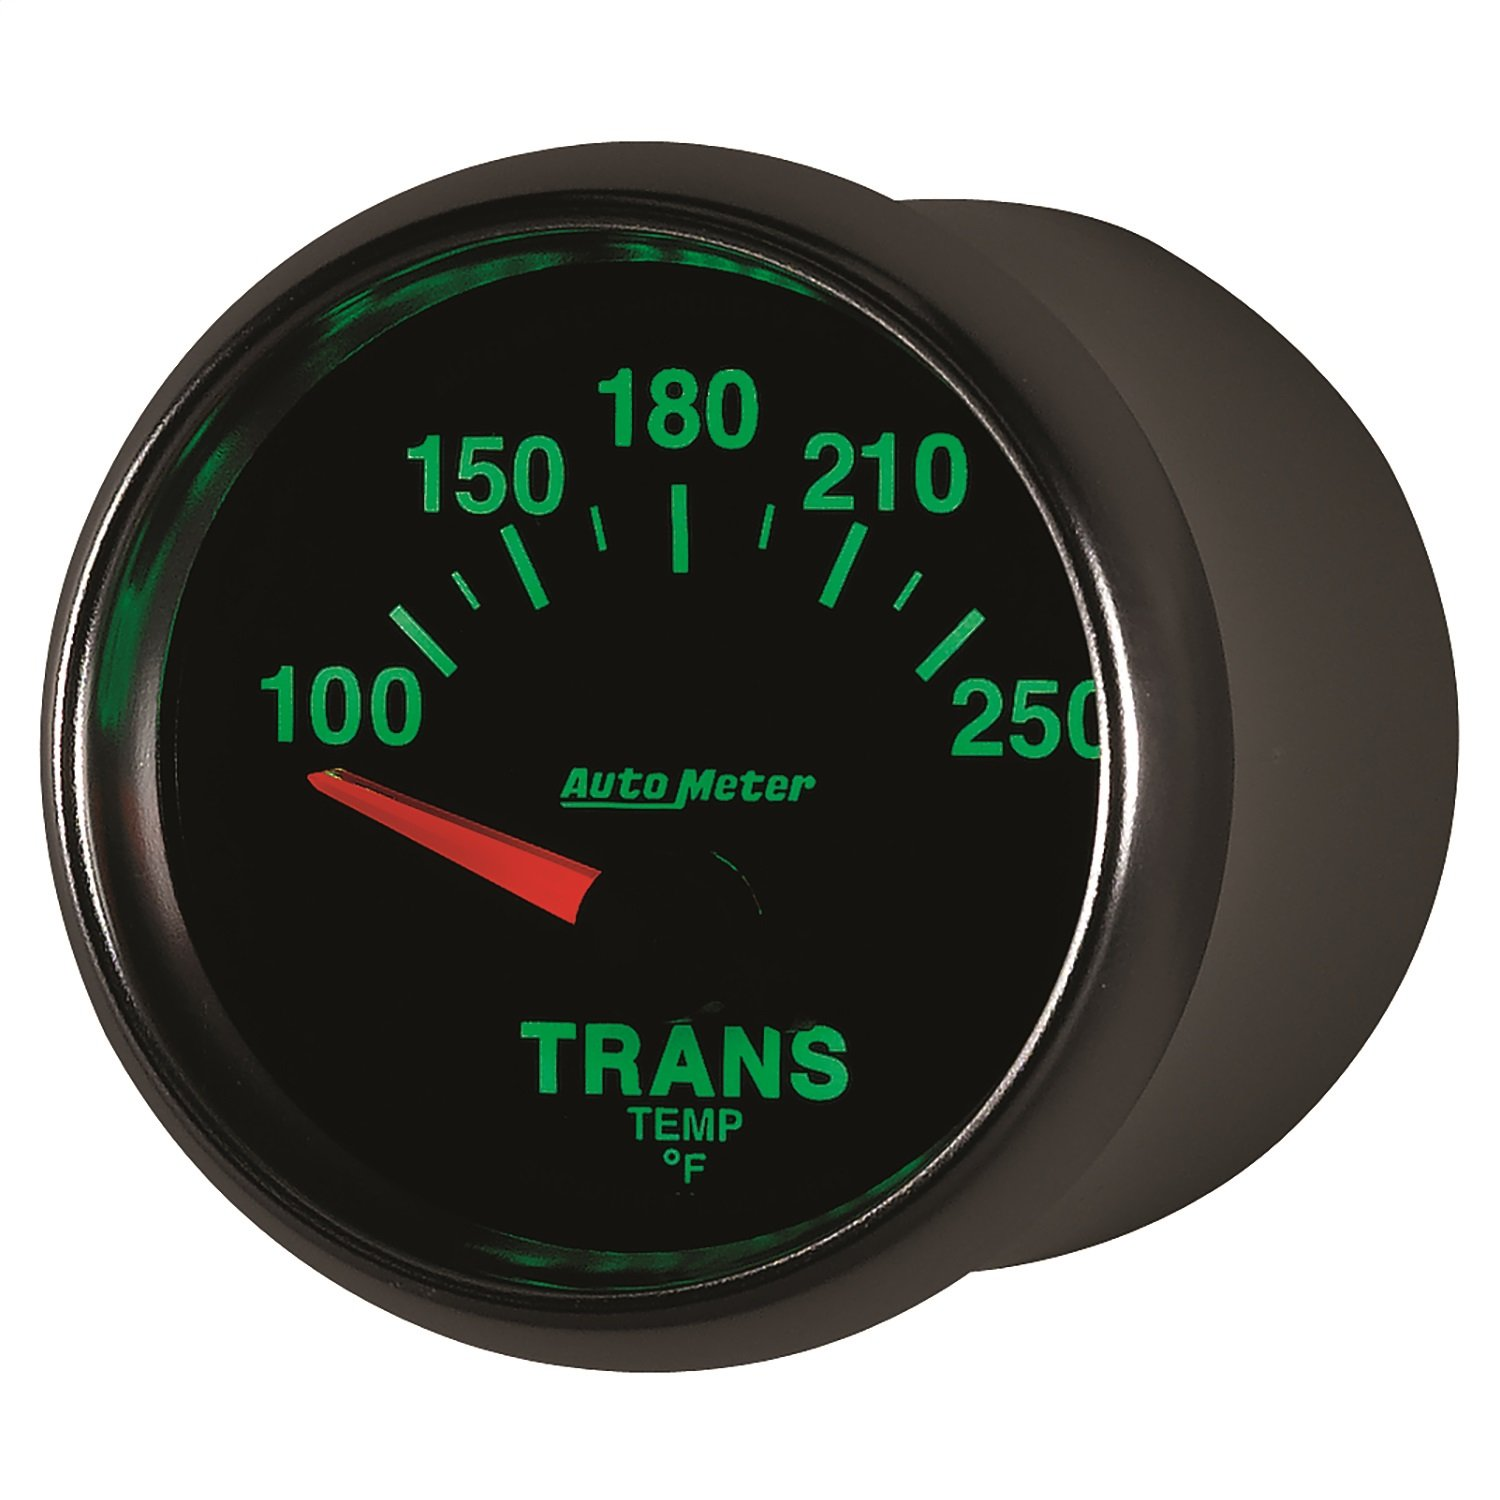 Auto Meter 3849 GS Electric Transmission Temperature Gauge by Auto Meter